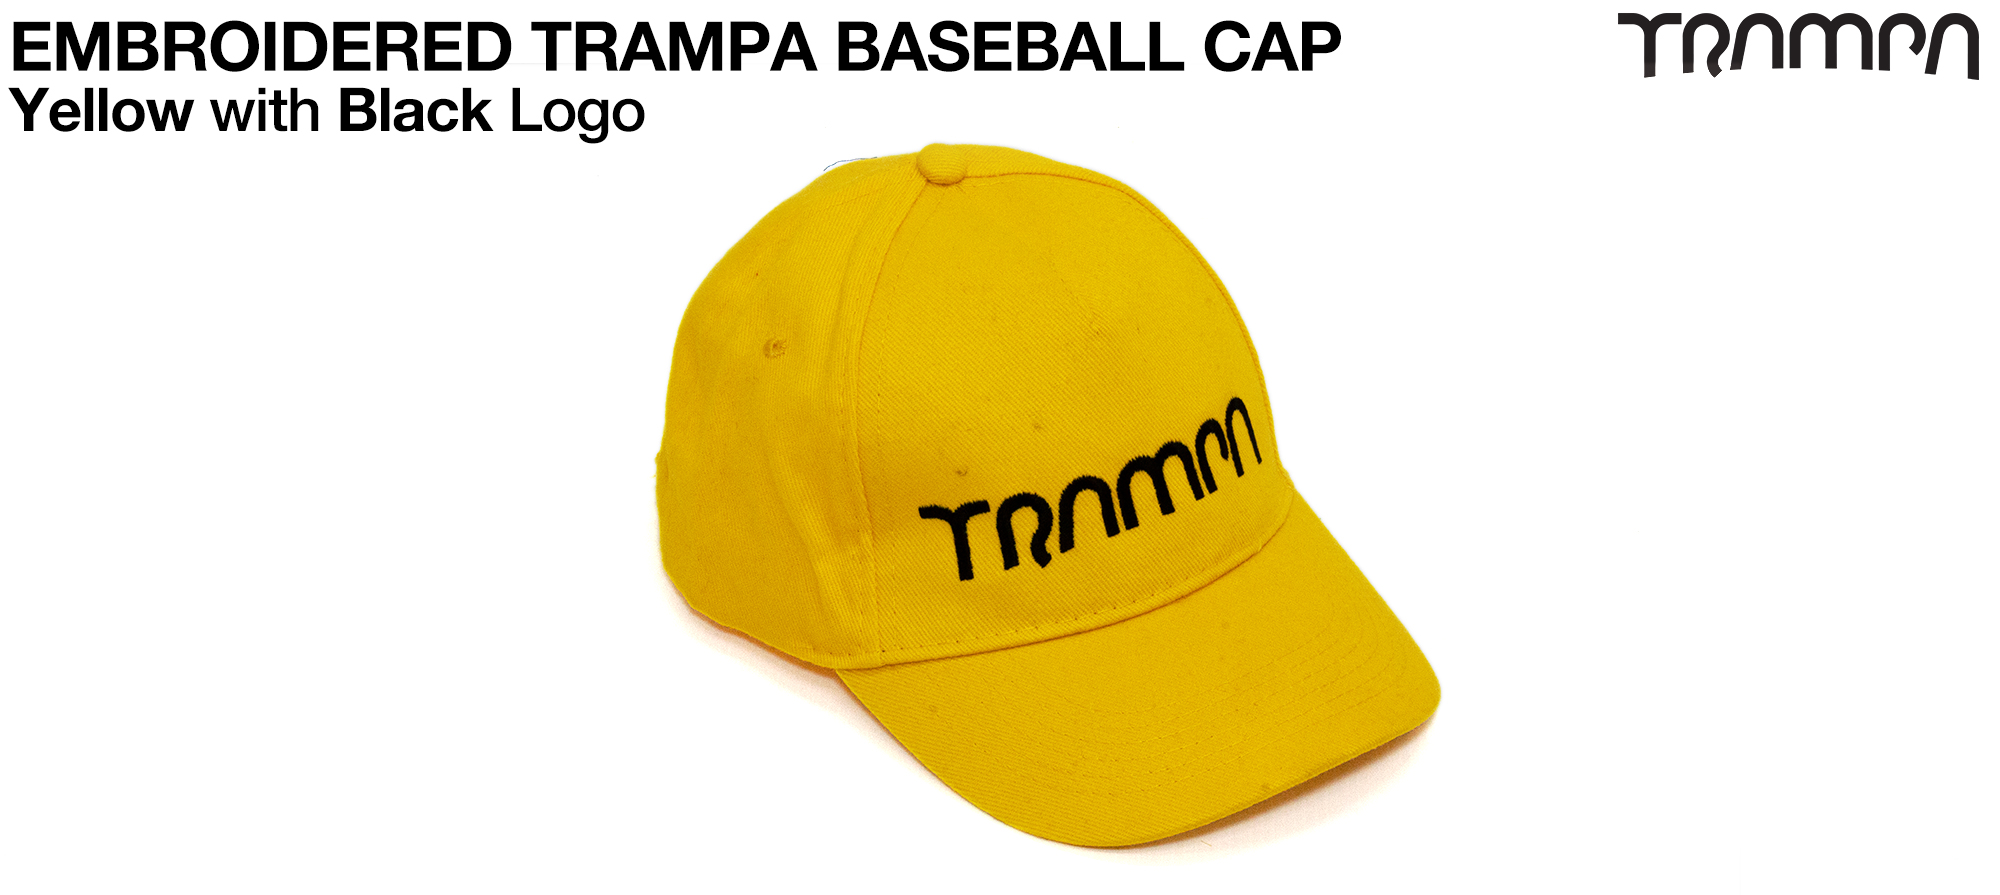 YELLOW Baseball Cap with BLACK logo embroidered